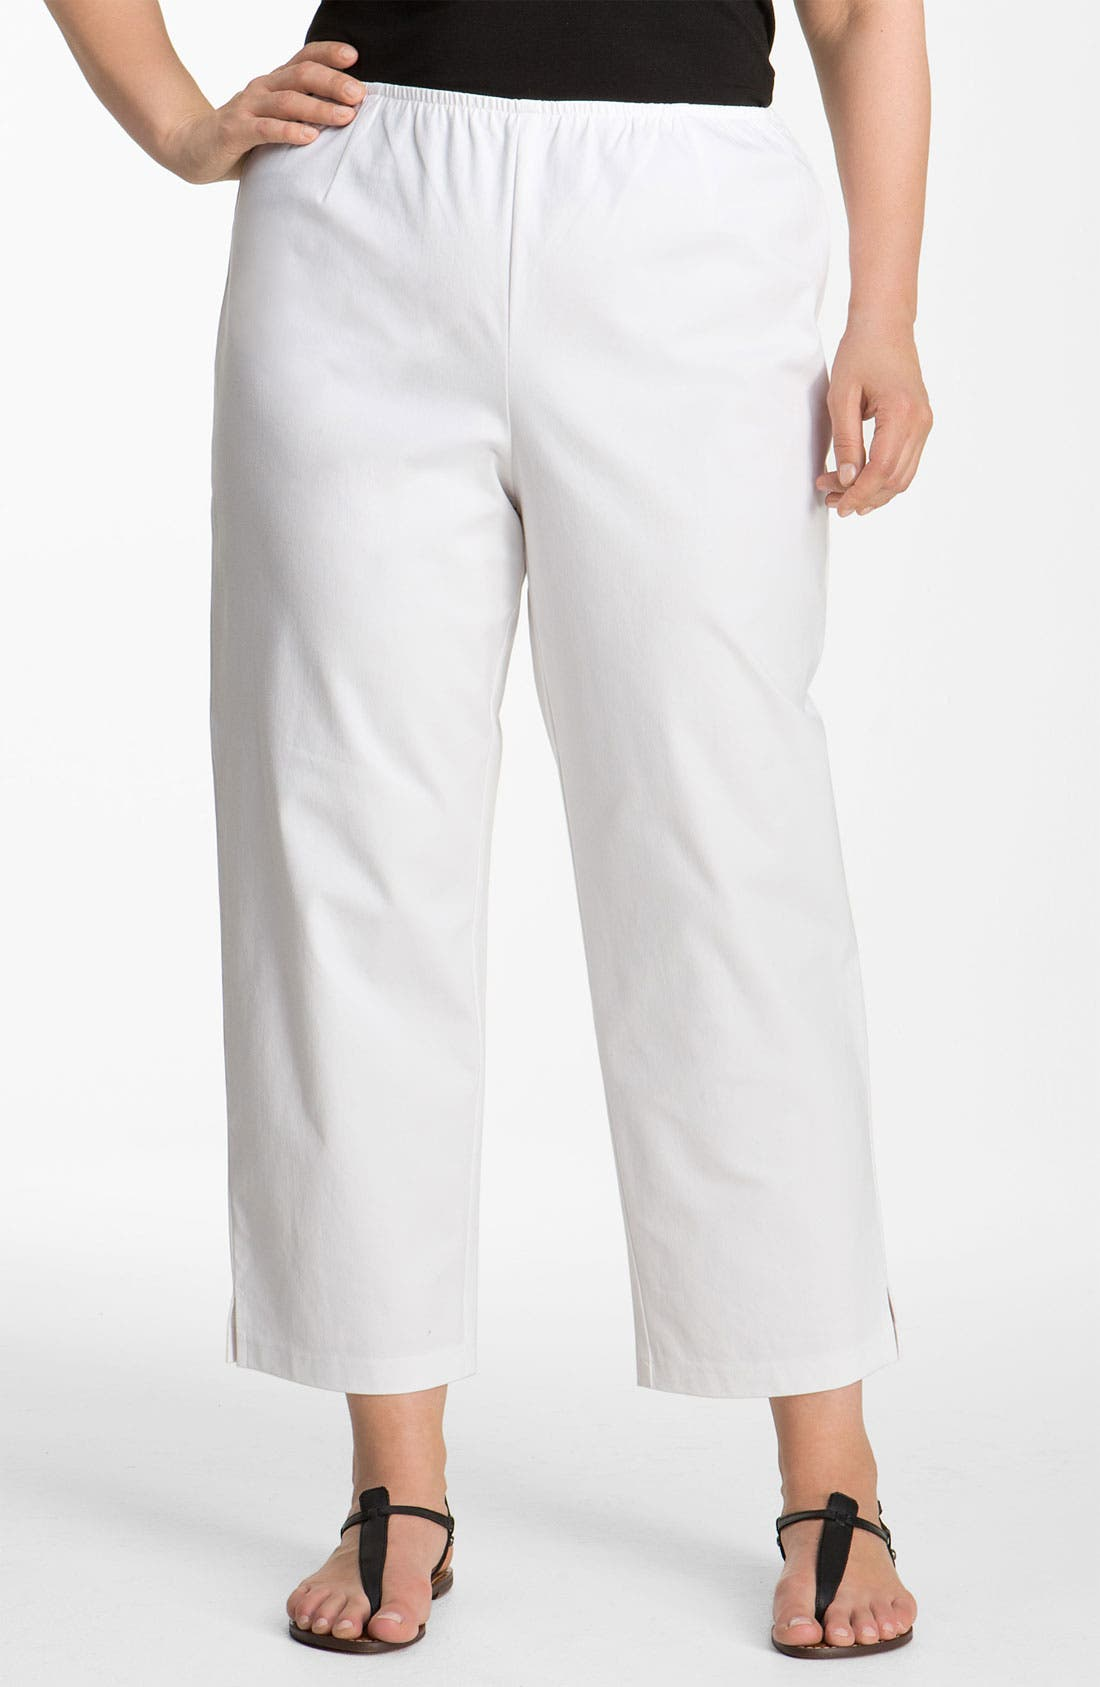 Stretch Organic Cotton Ankle Pants,                         Main,                         color, White